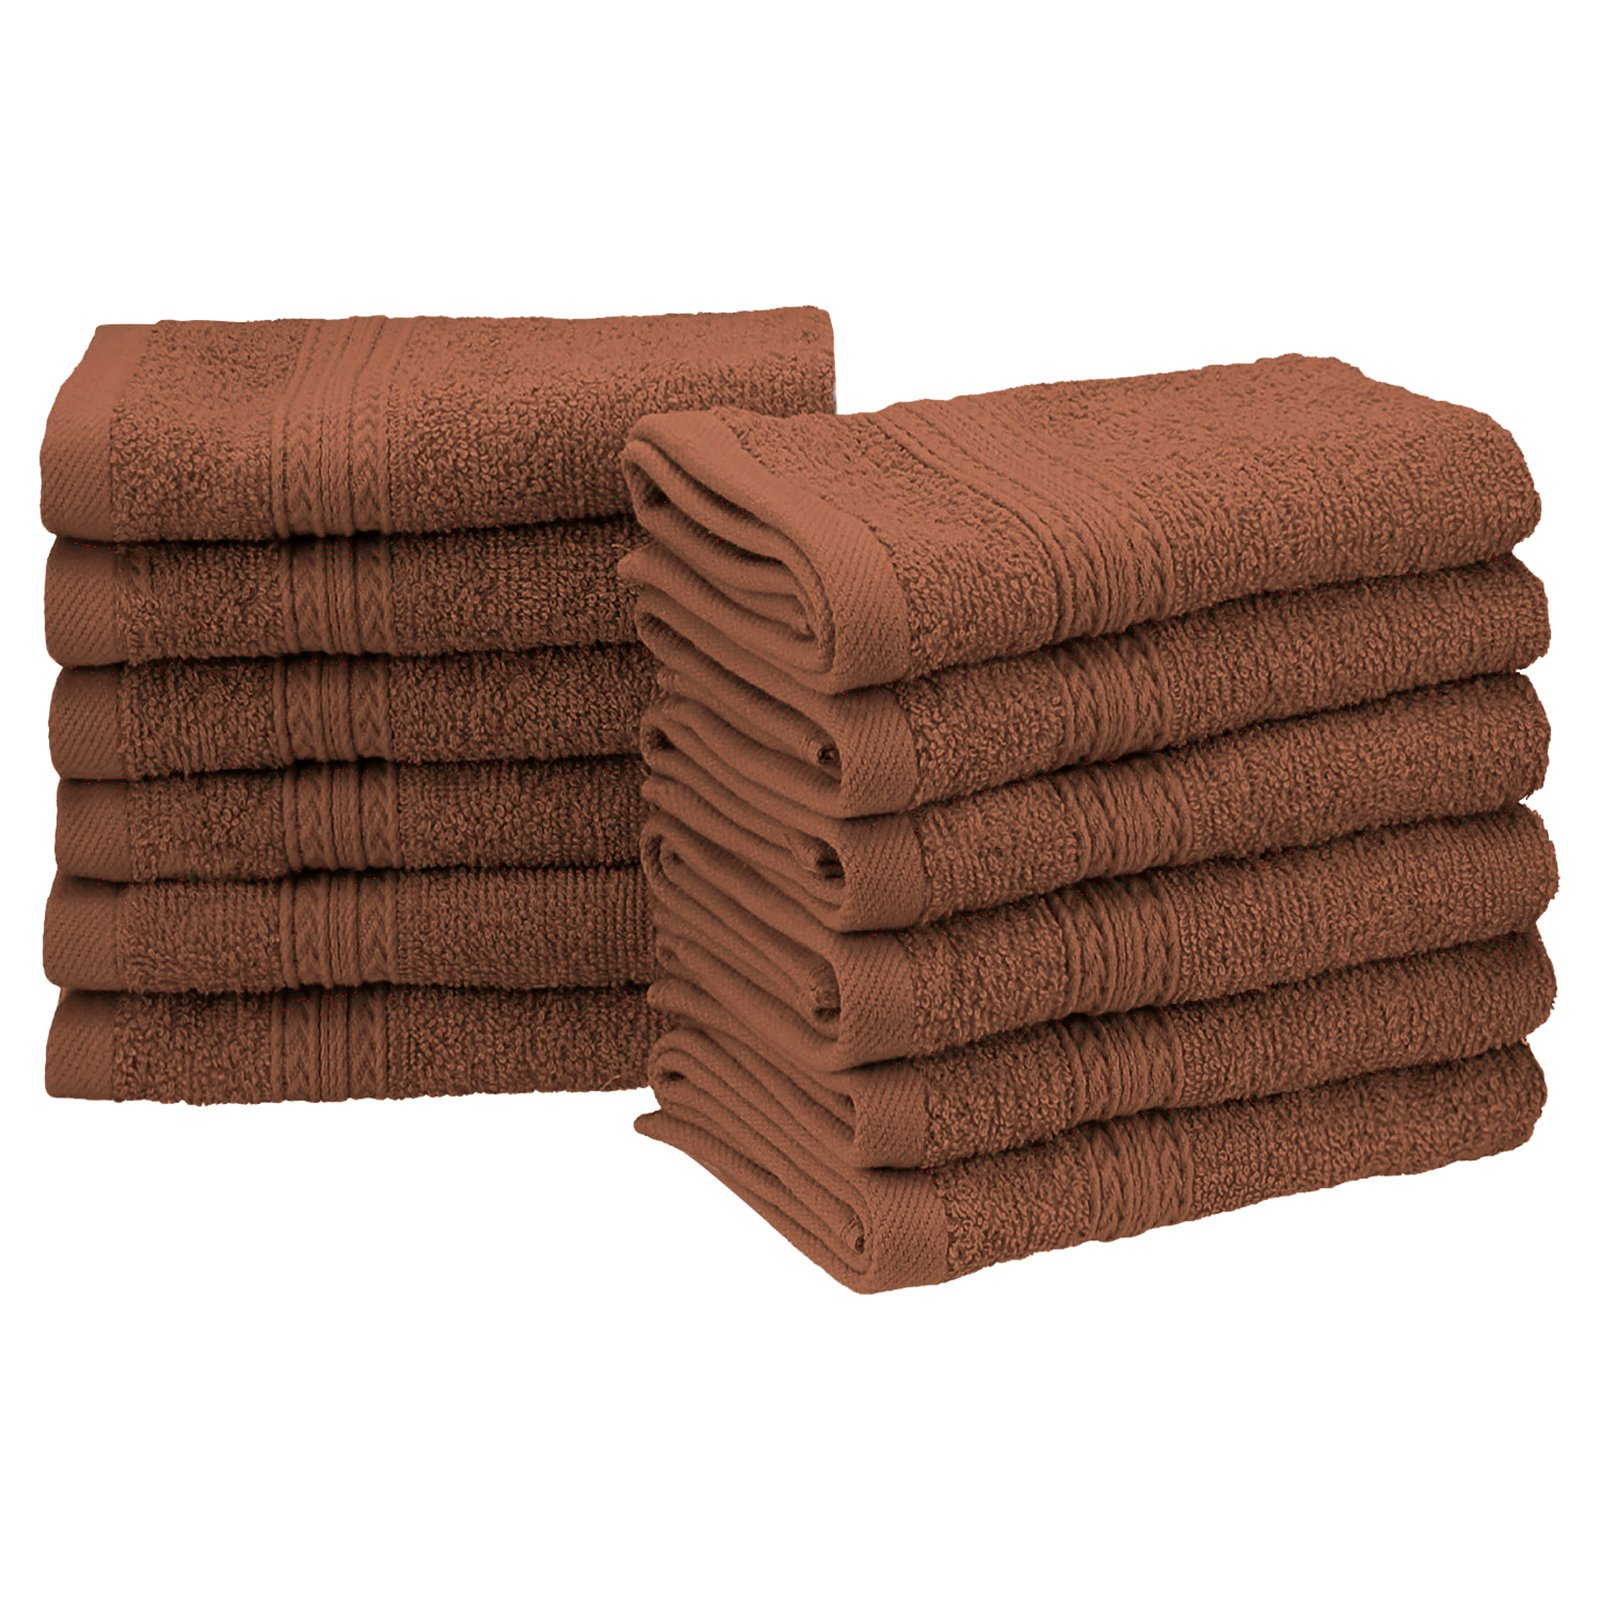 Superior Eco-Friendly 100% Ringspun Cotton 12Pc Face Towel Set by Supplier Generic